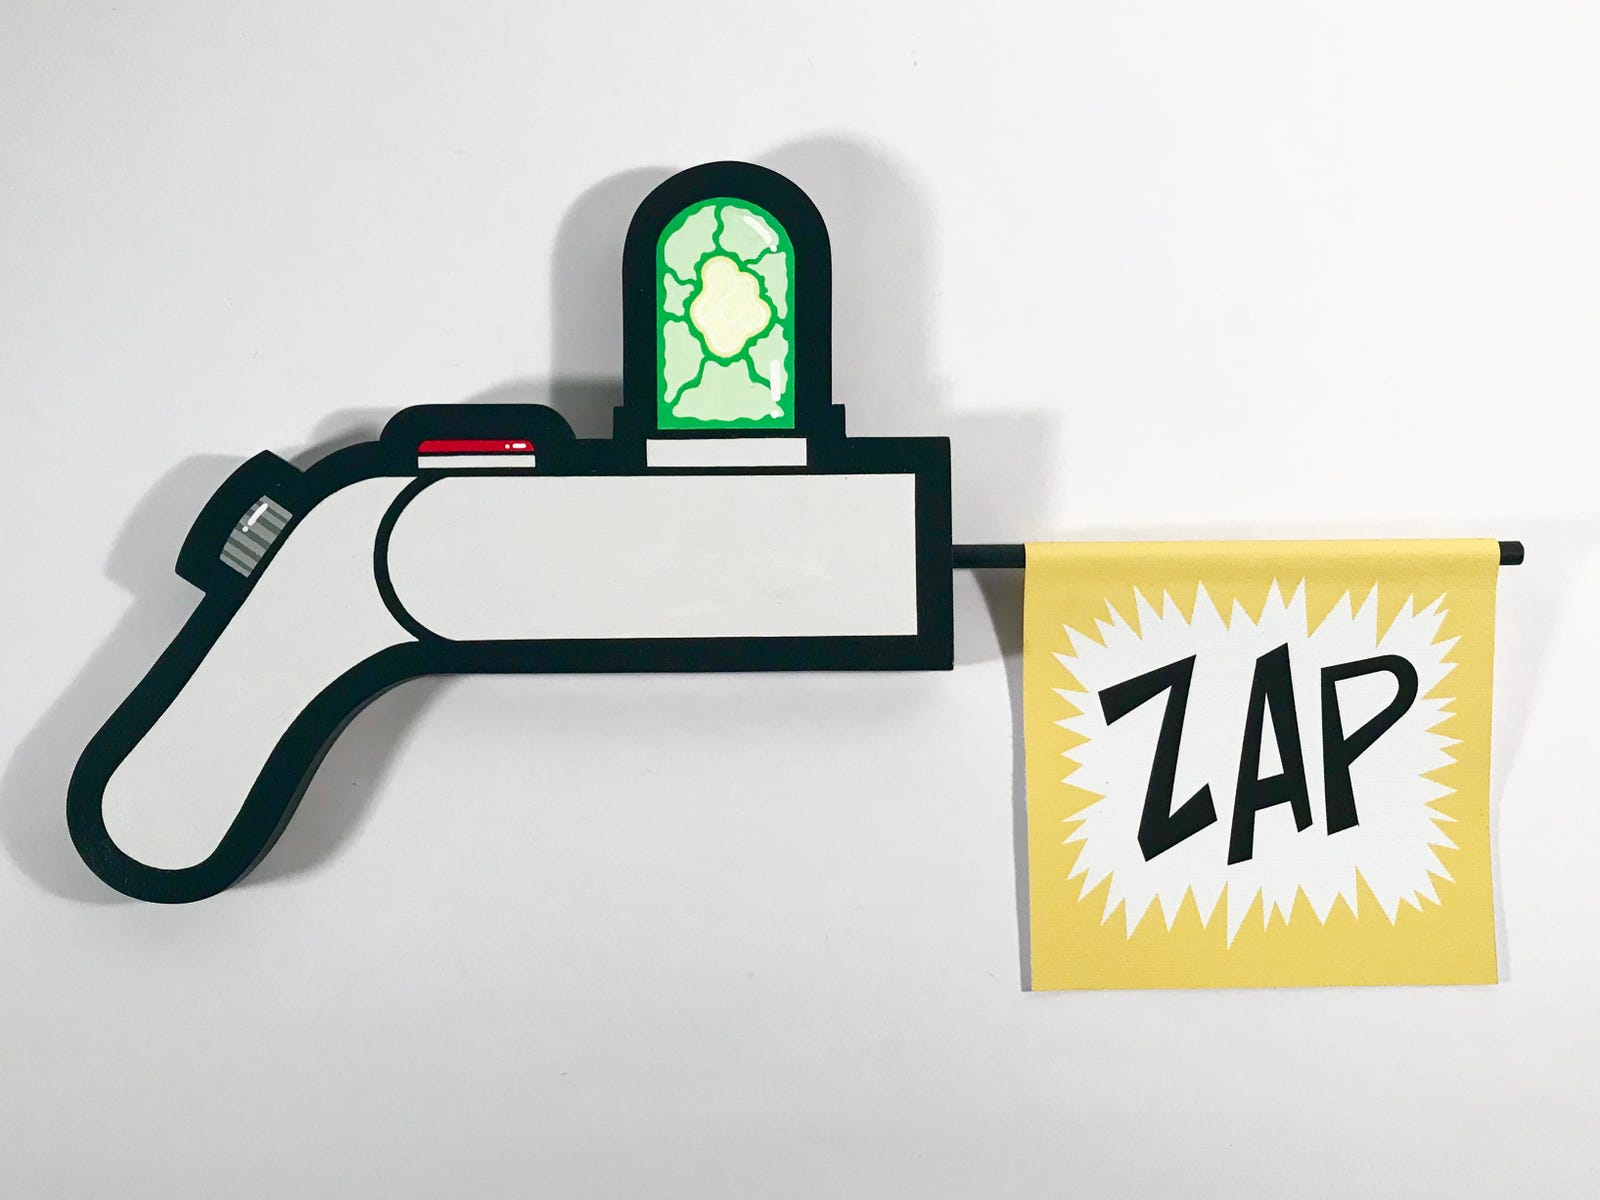 Rick Sanchez's Portal Gun. 15X8 inches (includes bang flags). Paint on cut wood and printed canvas flags.